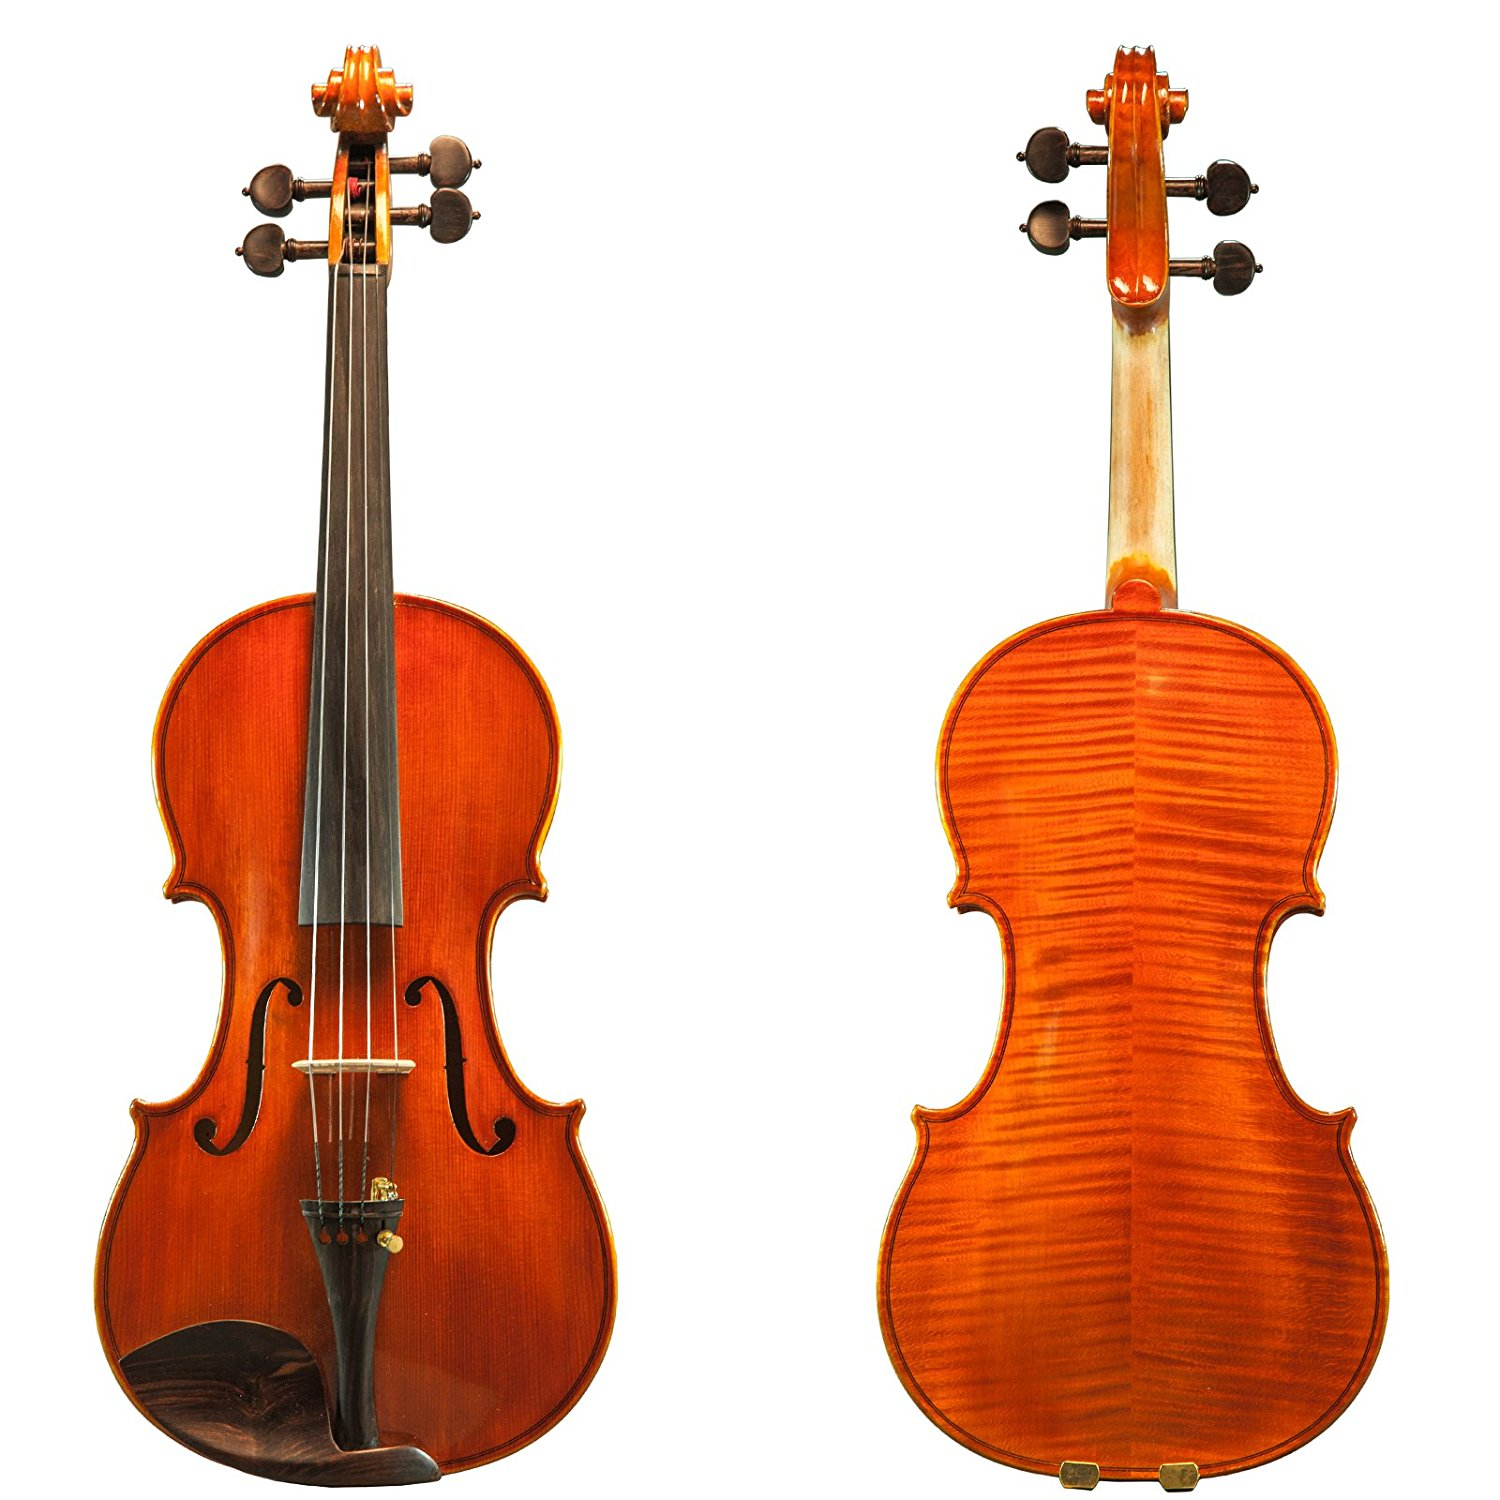 SKY Professional Hand-made Guarnerius Copy Select European Spruce 4/4 Full Size Acoustic Violin Dried Deep Rich Tone